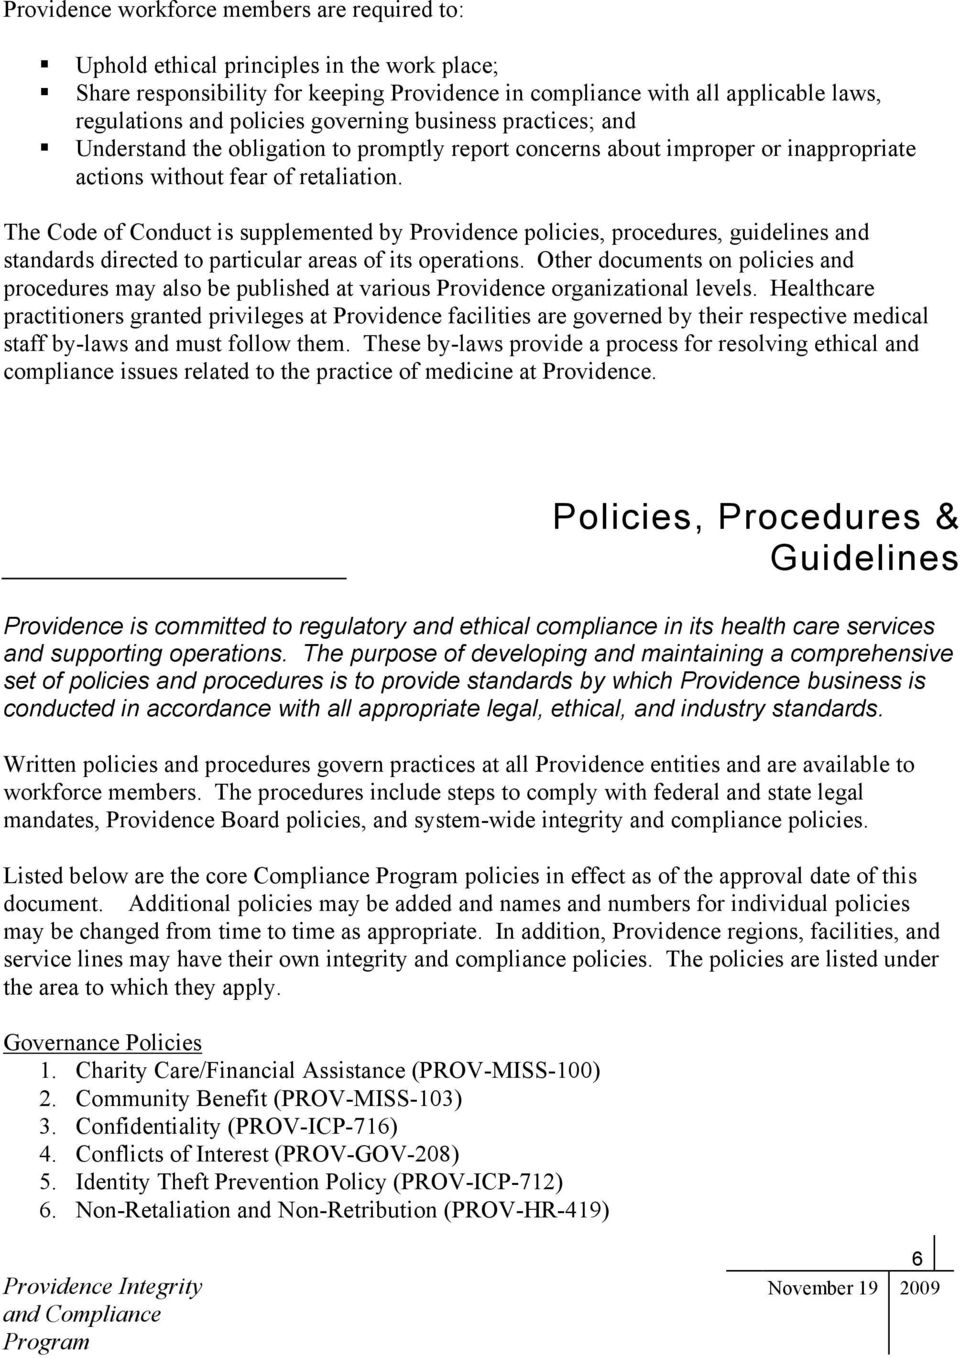 The Code of Conduct is supplemented by Providence policies, procedures, guidelines and standards directed to particular areas of its operations.